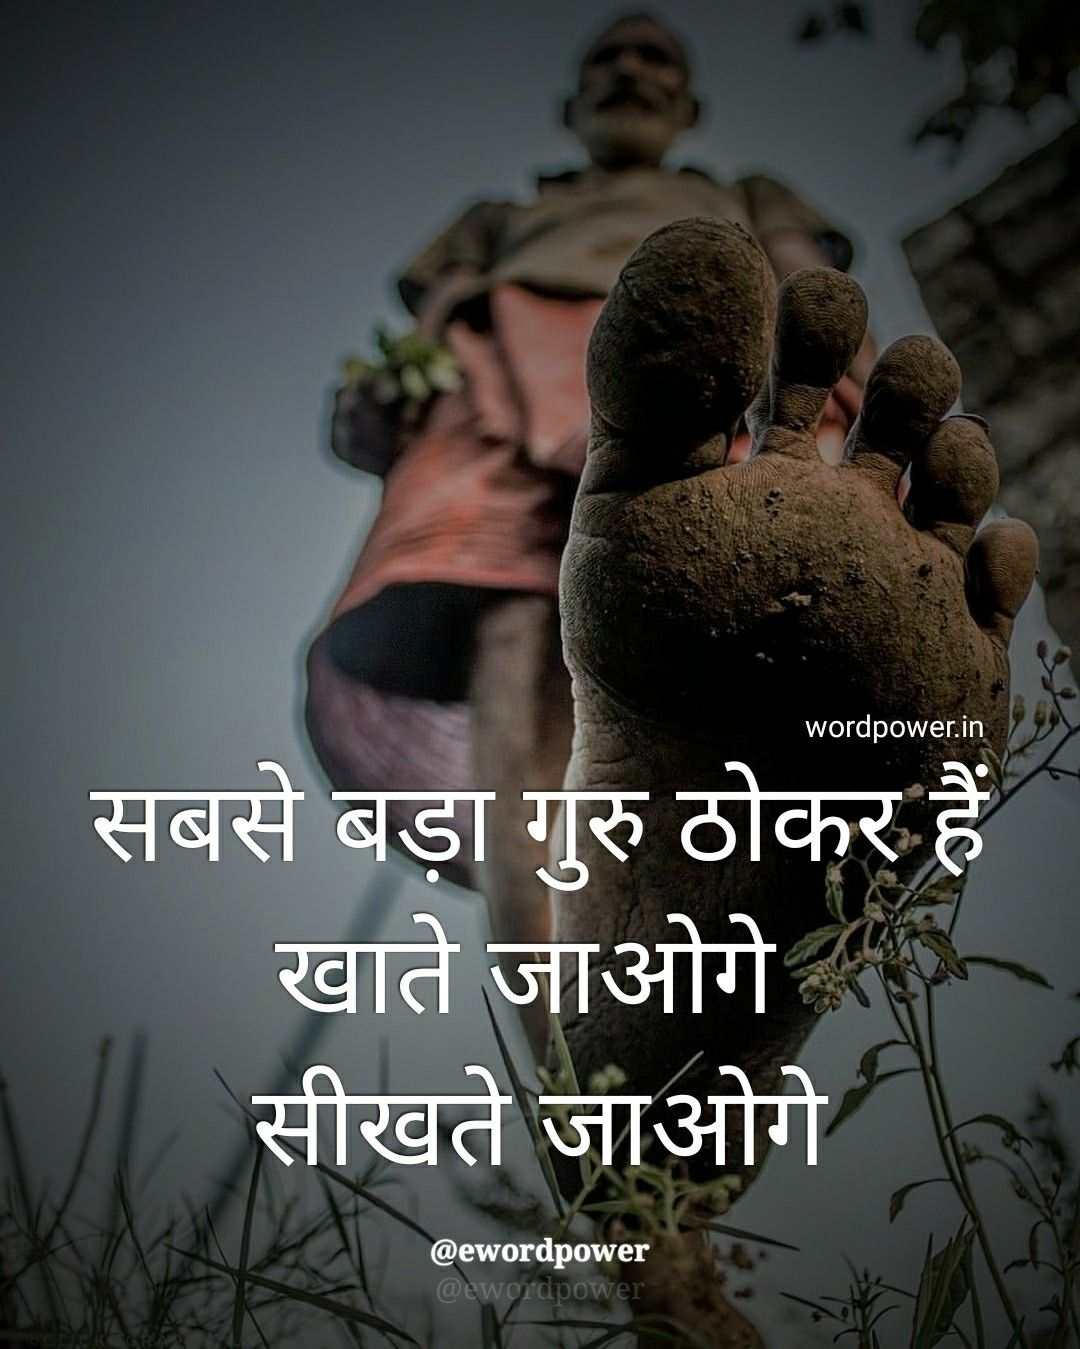 Hindi Words Best Hindi Marathi Quotes Collection Father Quotes